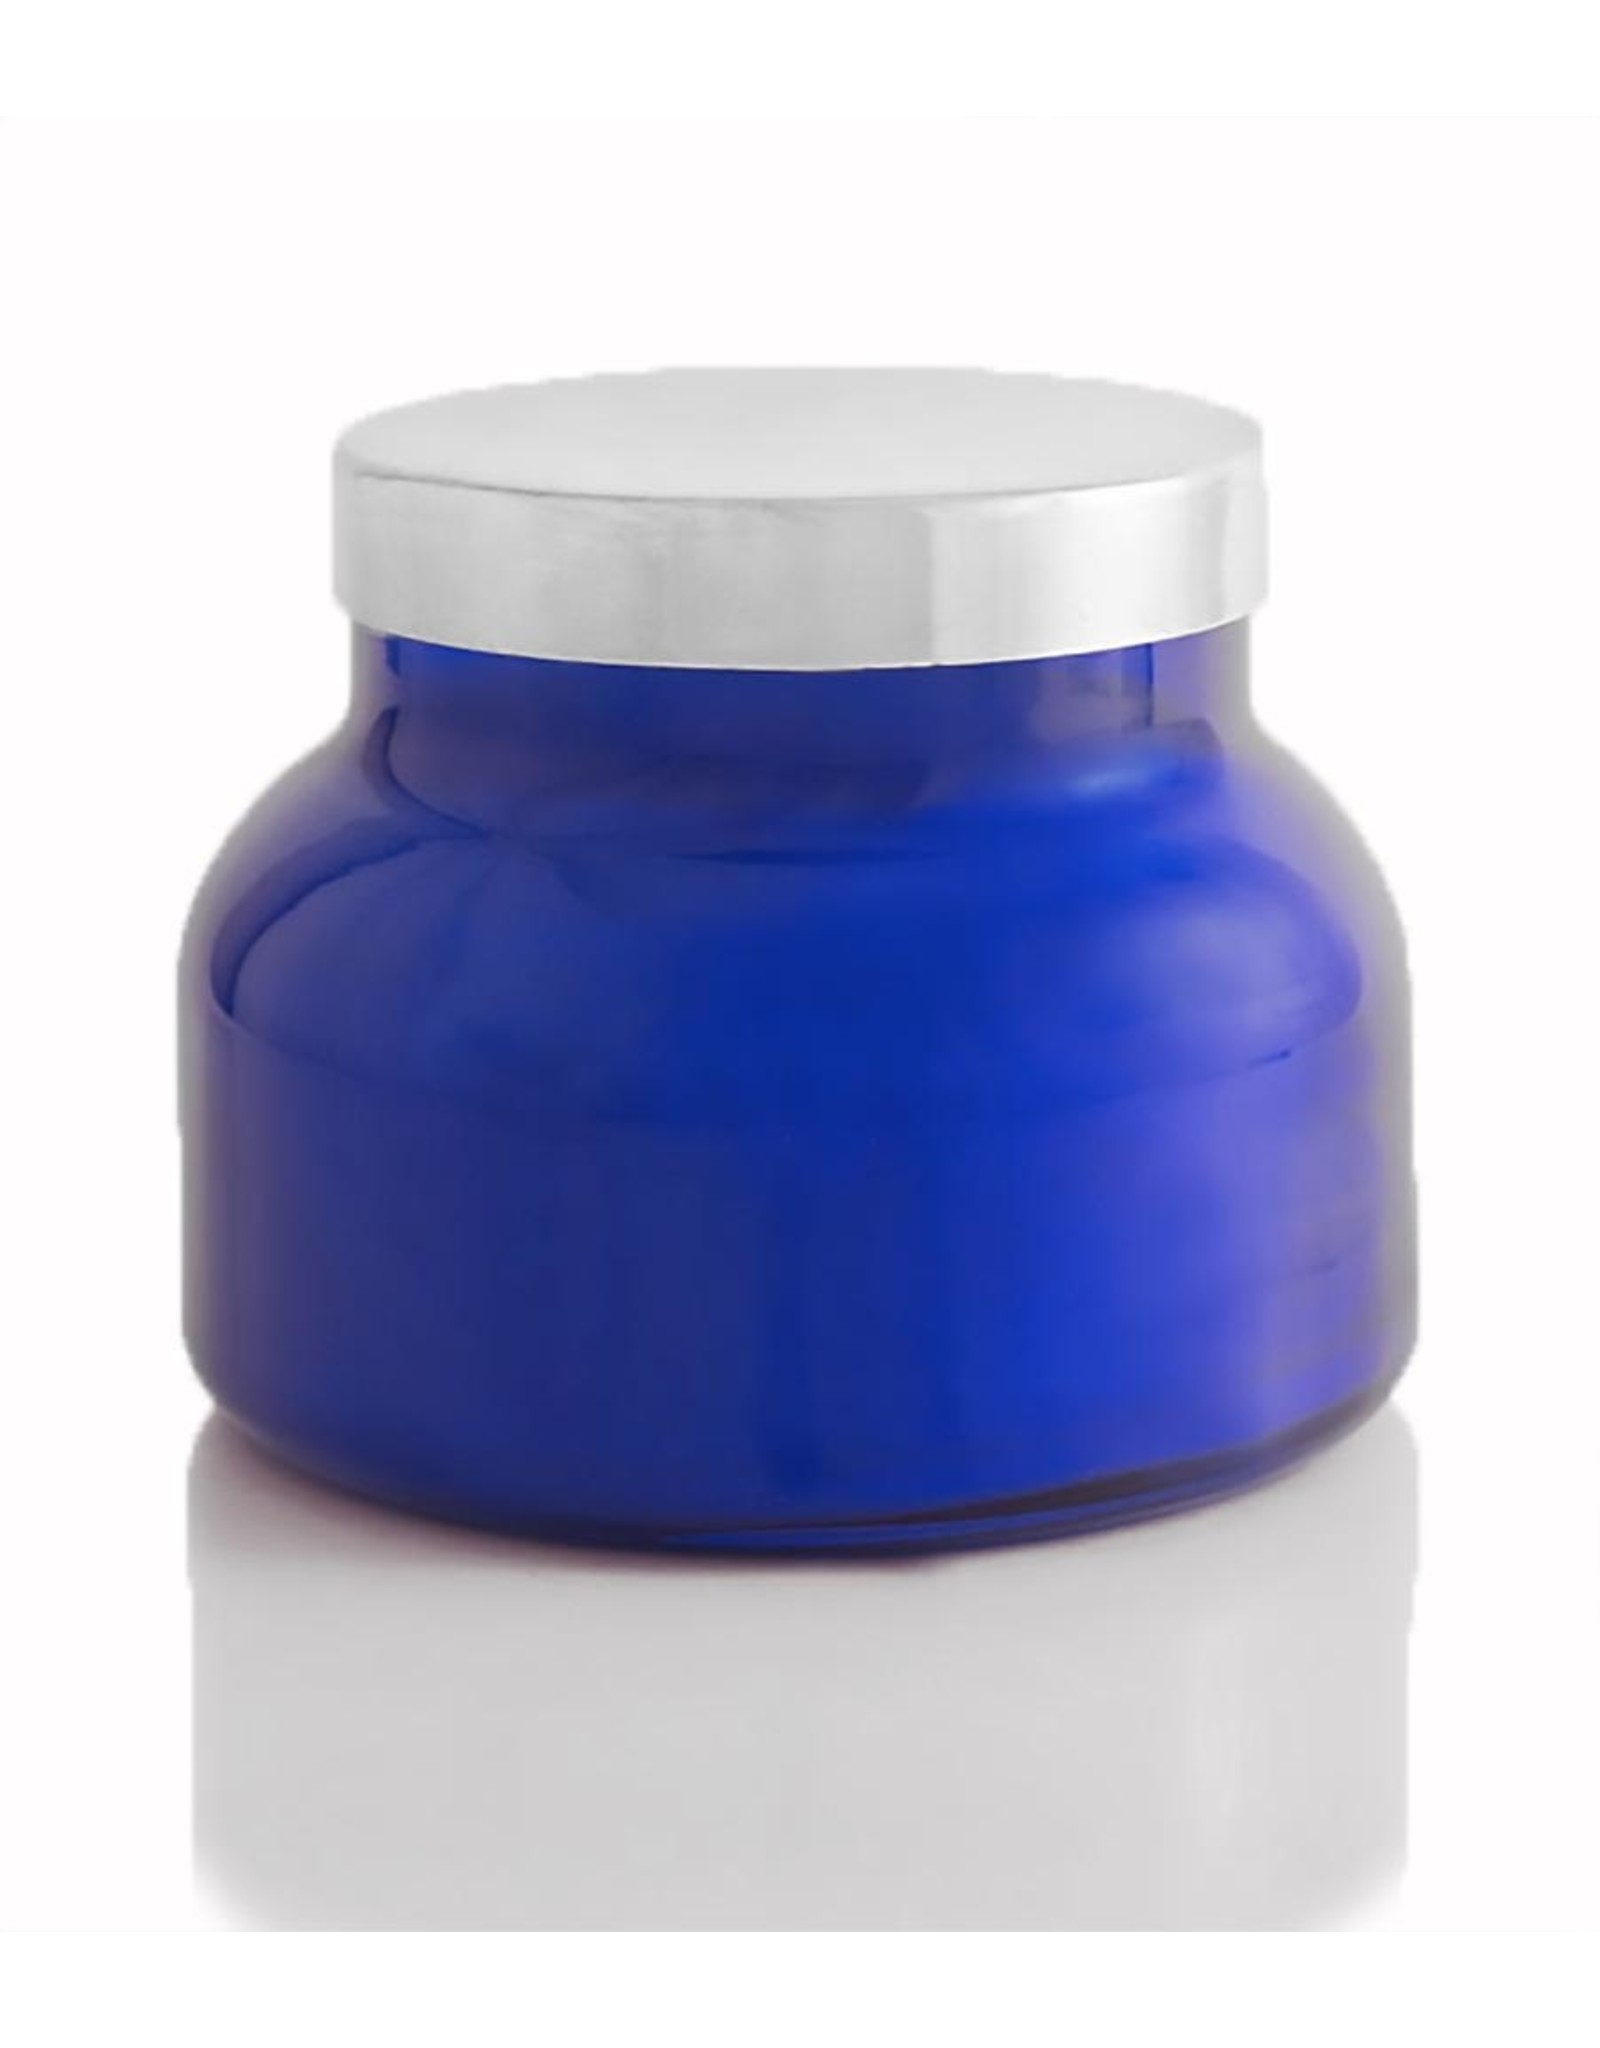 capri BLUE Volcano Candle Blue Signature Jar 19 Oz